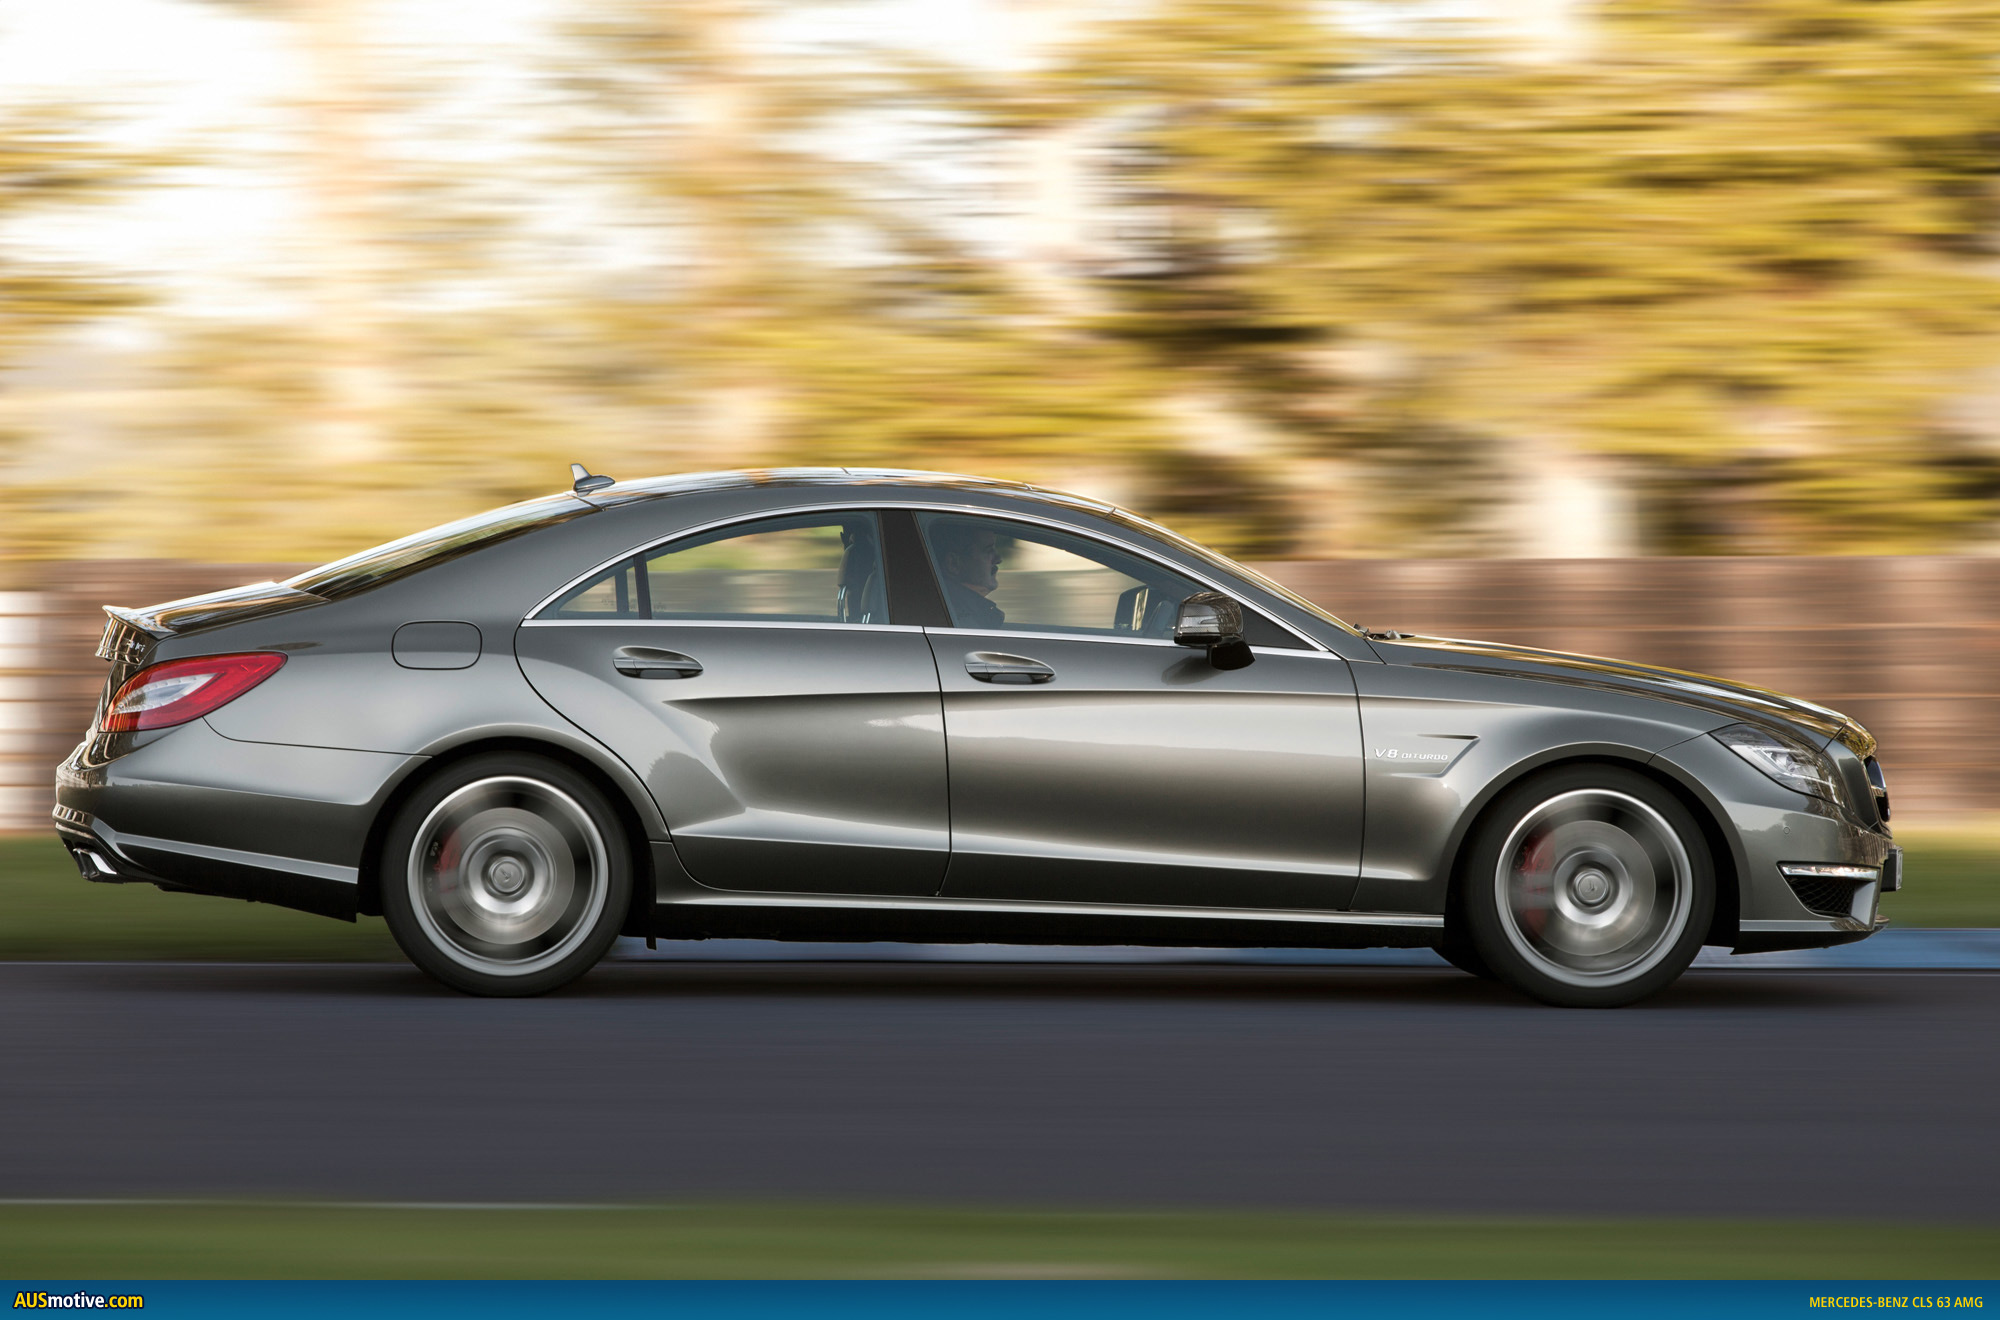 Mercedes benz cls 63 amg photo gallery for Mercedes benz cl amg